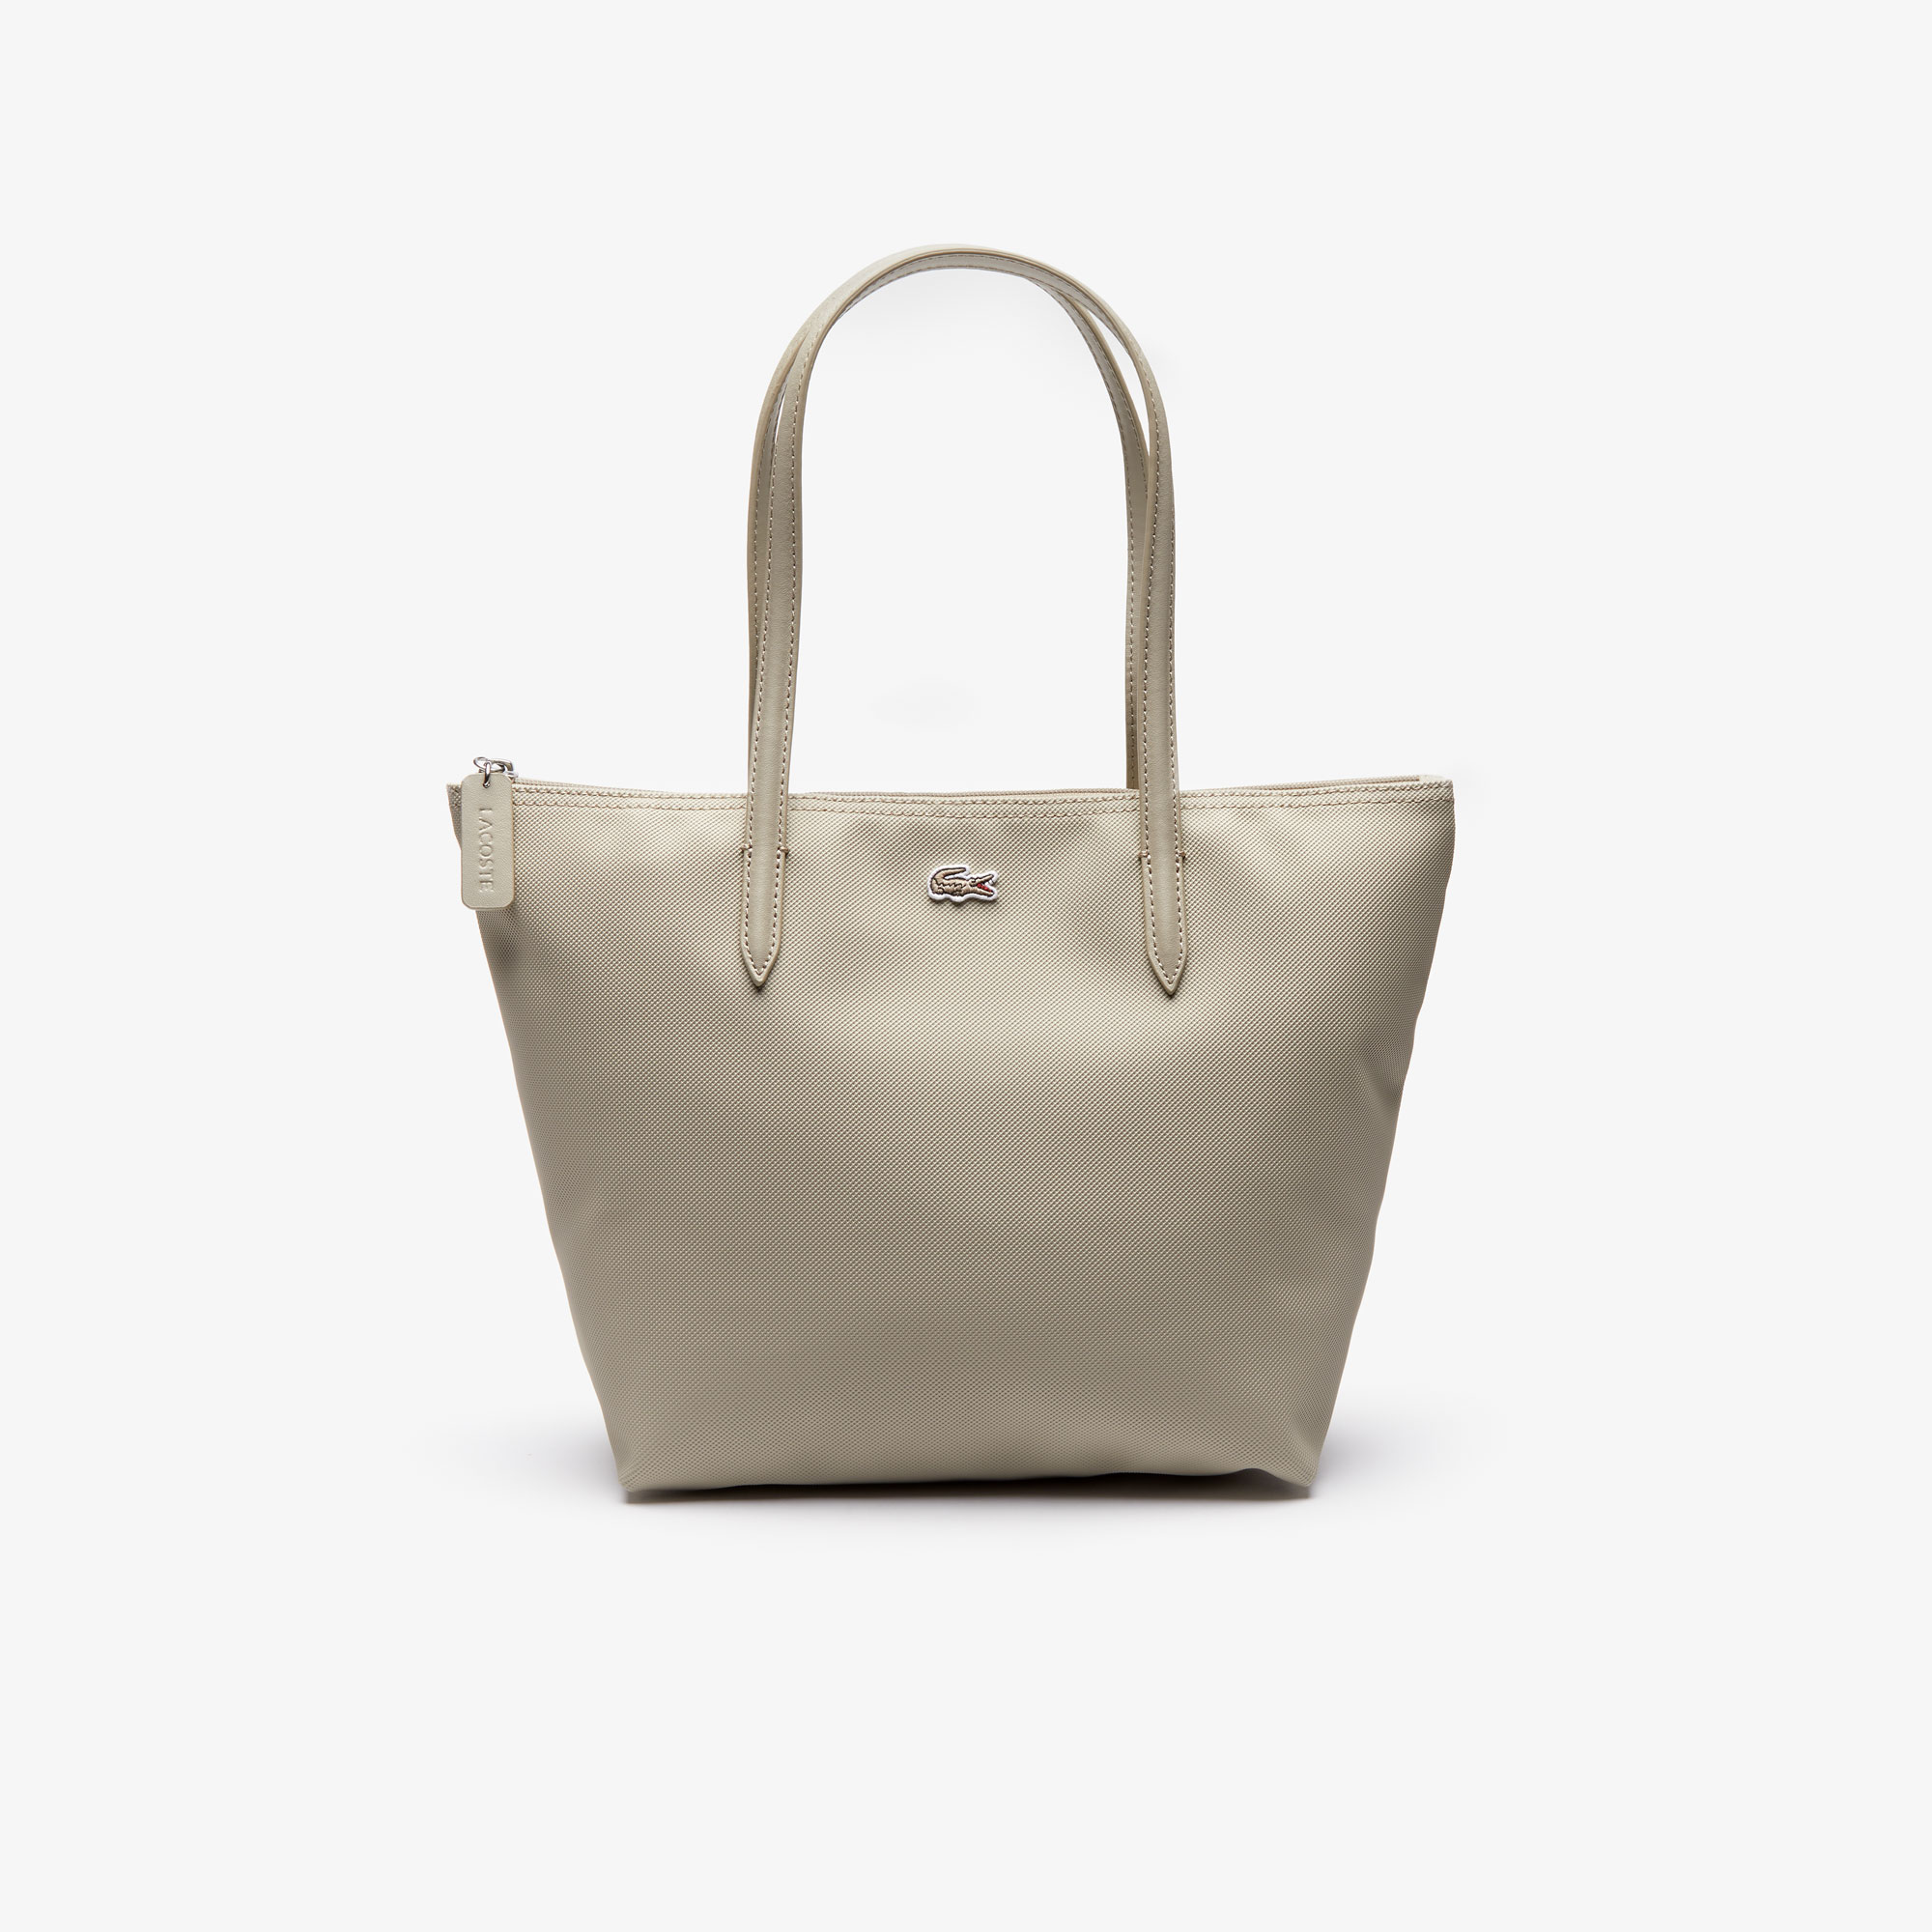 d425e0ba3e40 Bags & Handbags Collection | Women's Leather Goods | LACOSTE